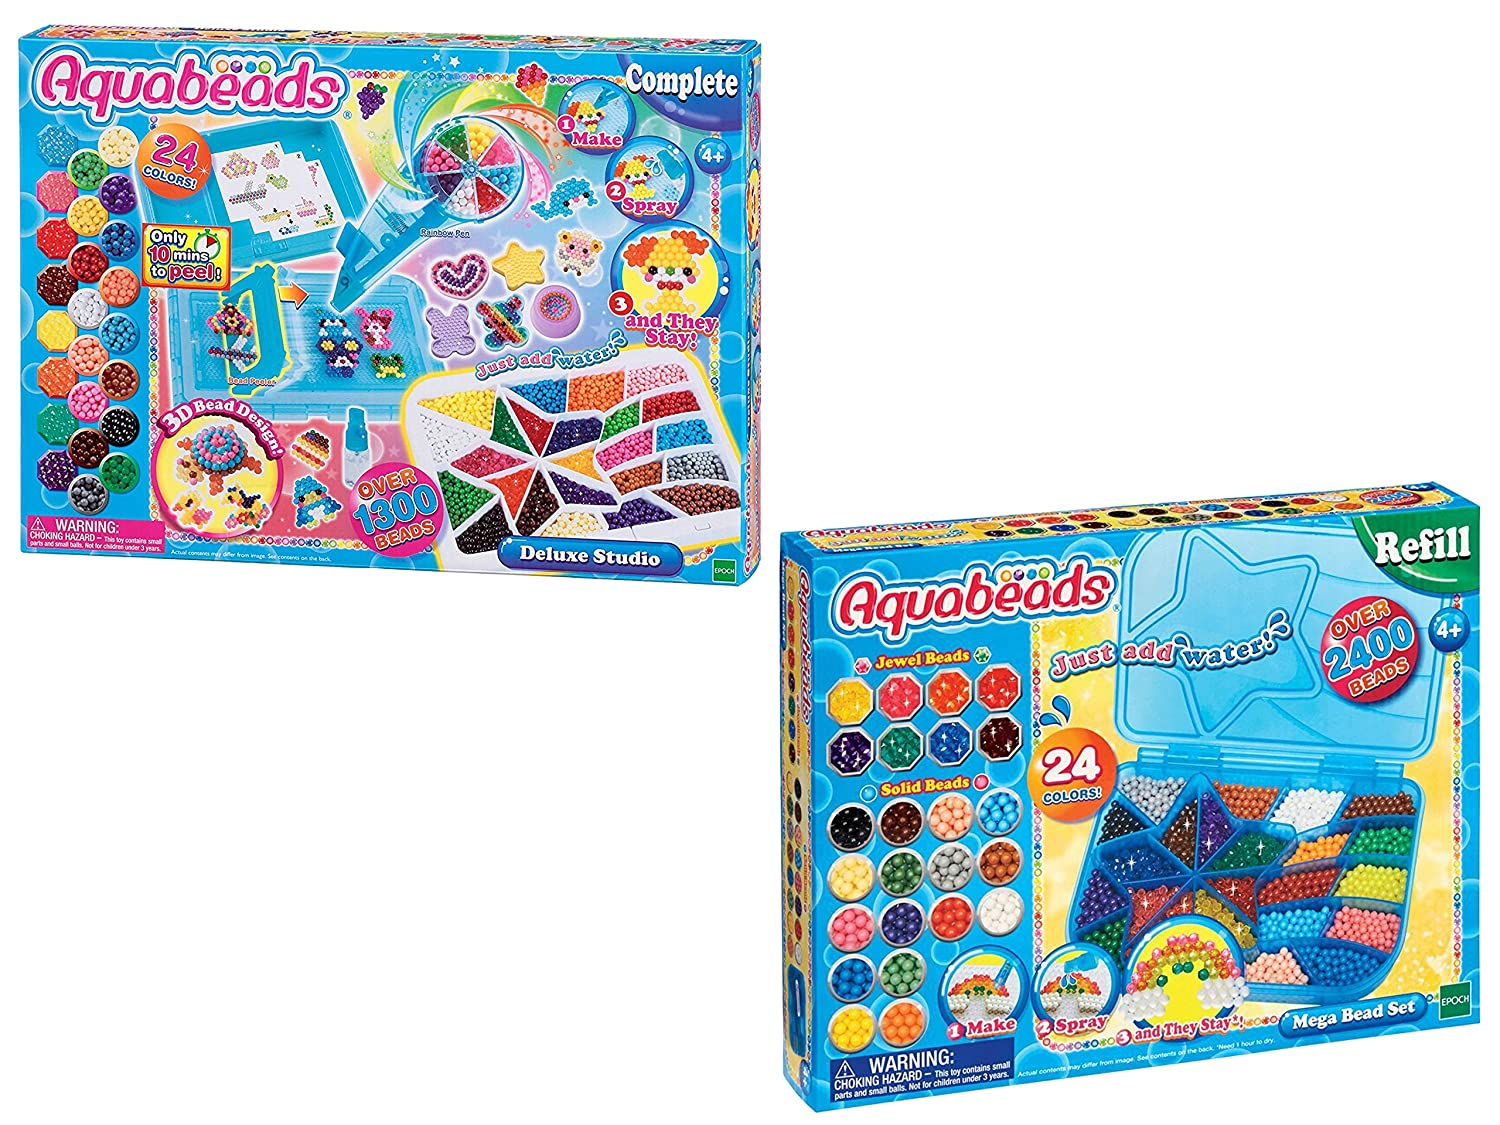 Aquabeads Deluxe Studio Mega Bead Set